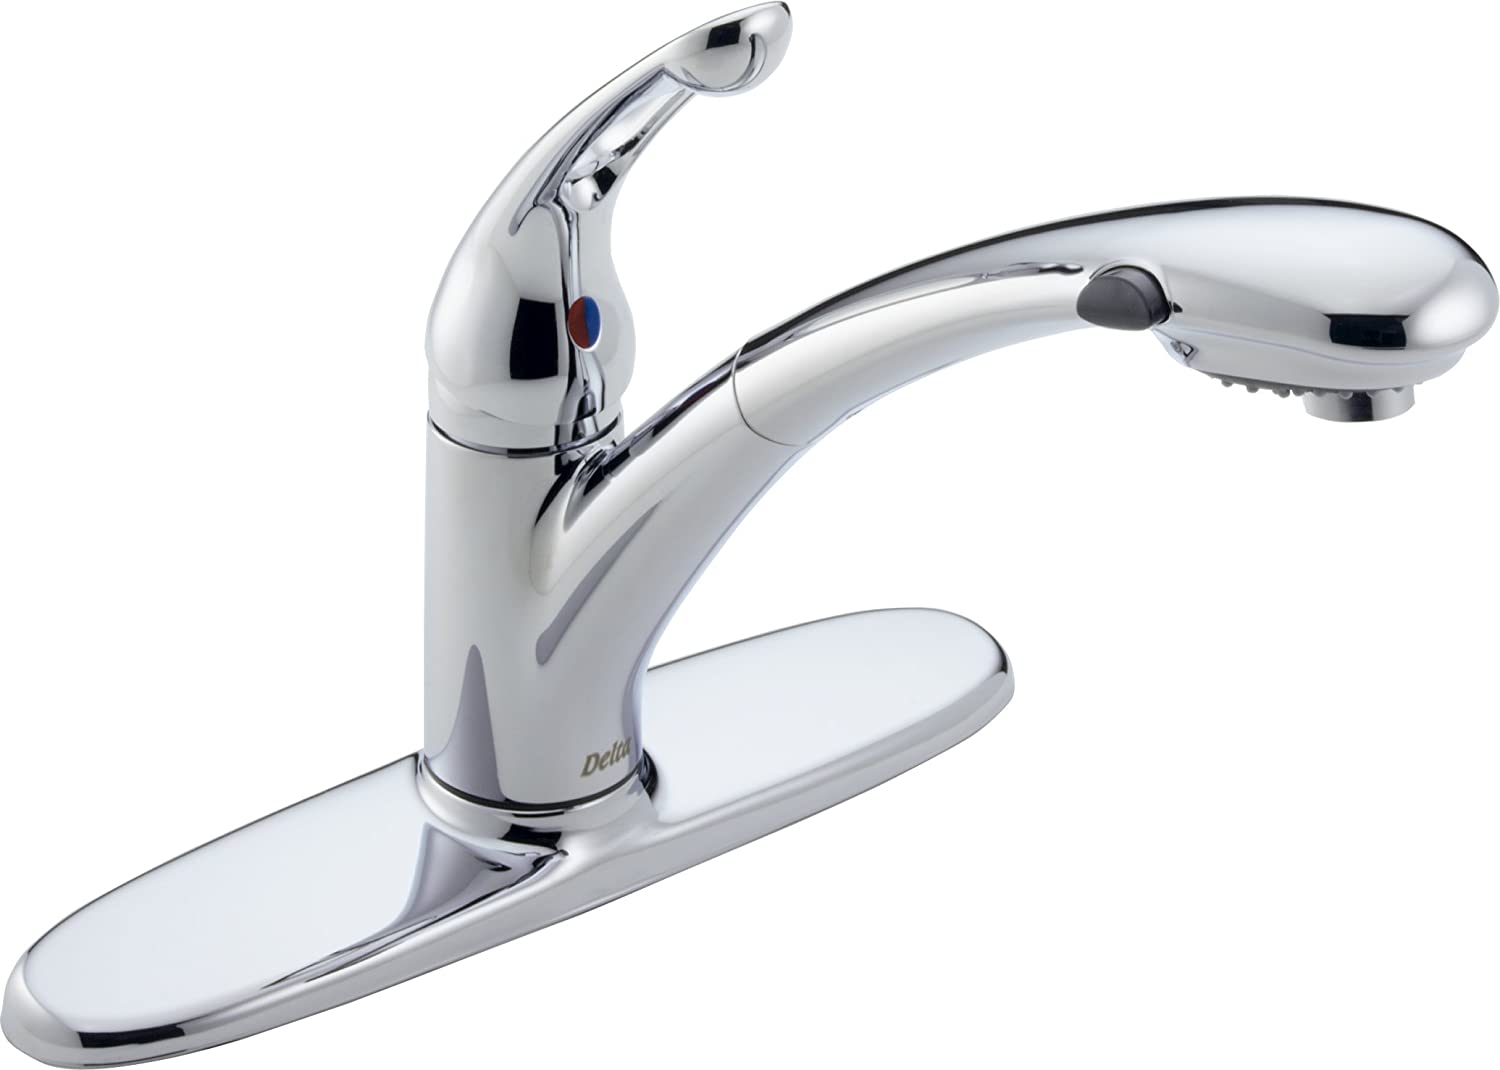 Delta 472 DST Signature Single Handle Pull Out Kitchen Faucet, Chrome    Touch On Kitchen Sink Faucets   Amazon.com